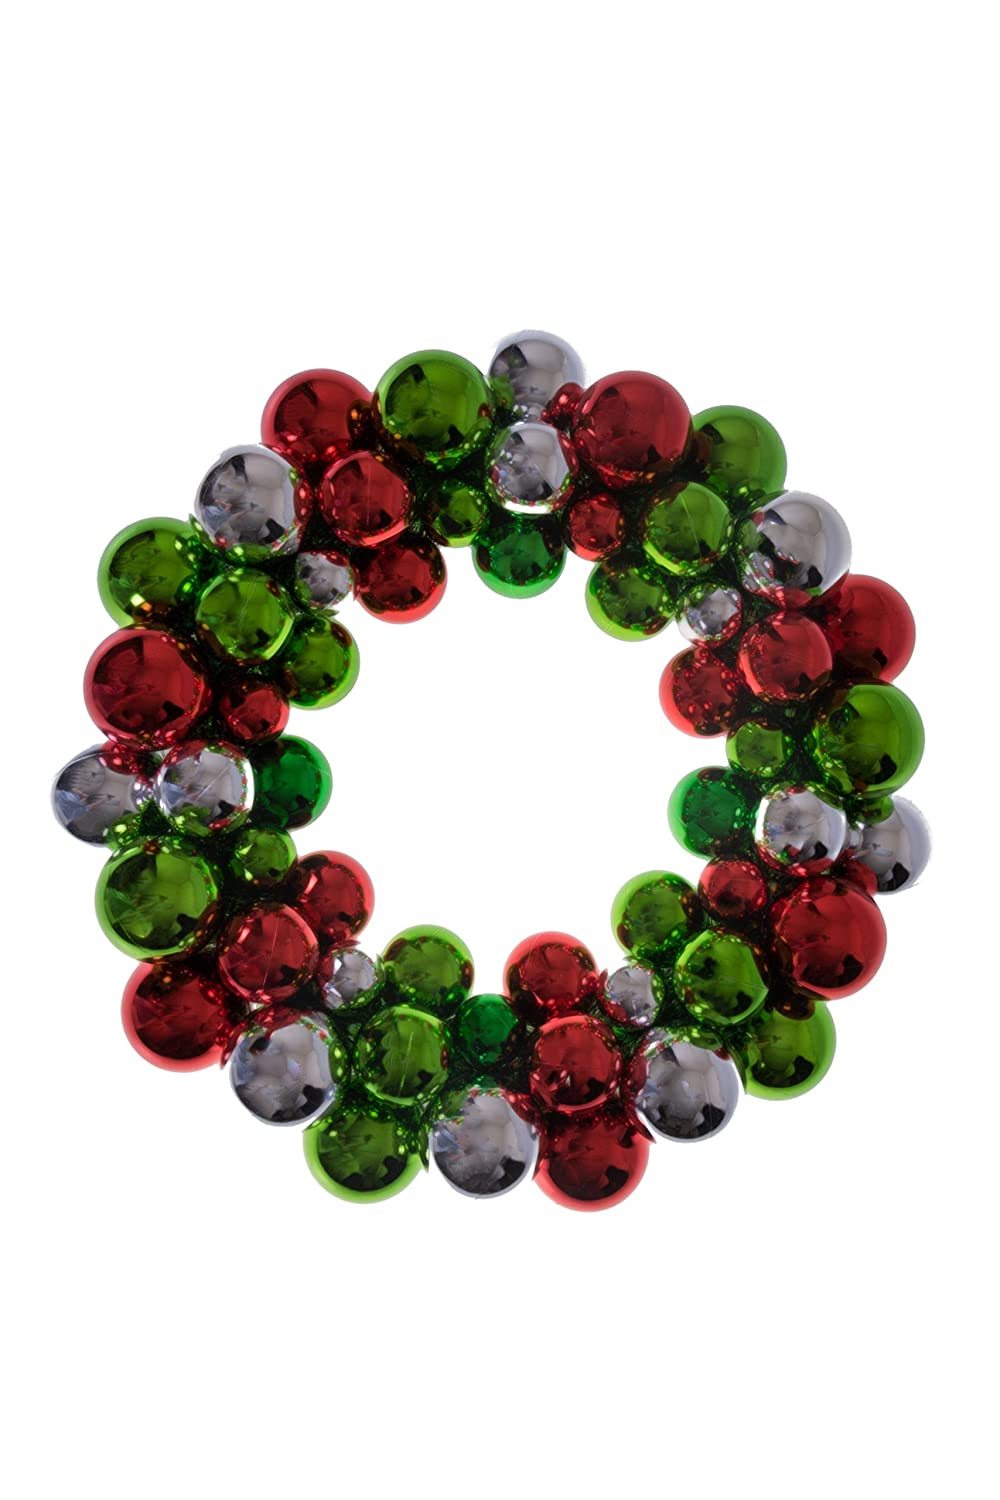 "Christmas Ornament Wreath by Clever Creations | Blue, Green, White & Silver | Festive Holiday Décor | Modern Theme | Lightweight Shatter Resistant | Indoor/Outdoor Various Use | 13.5"" x 13.5"" x 2.75"""